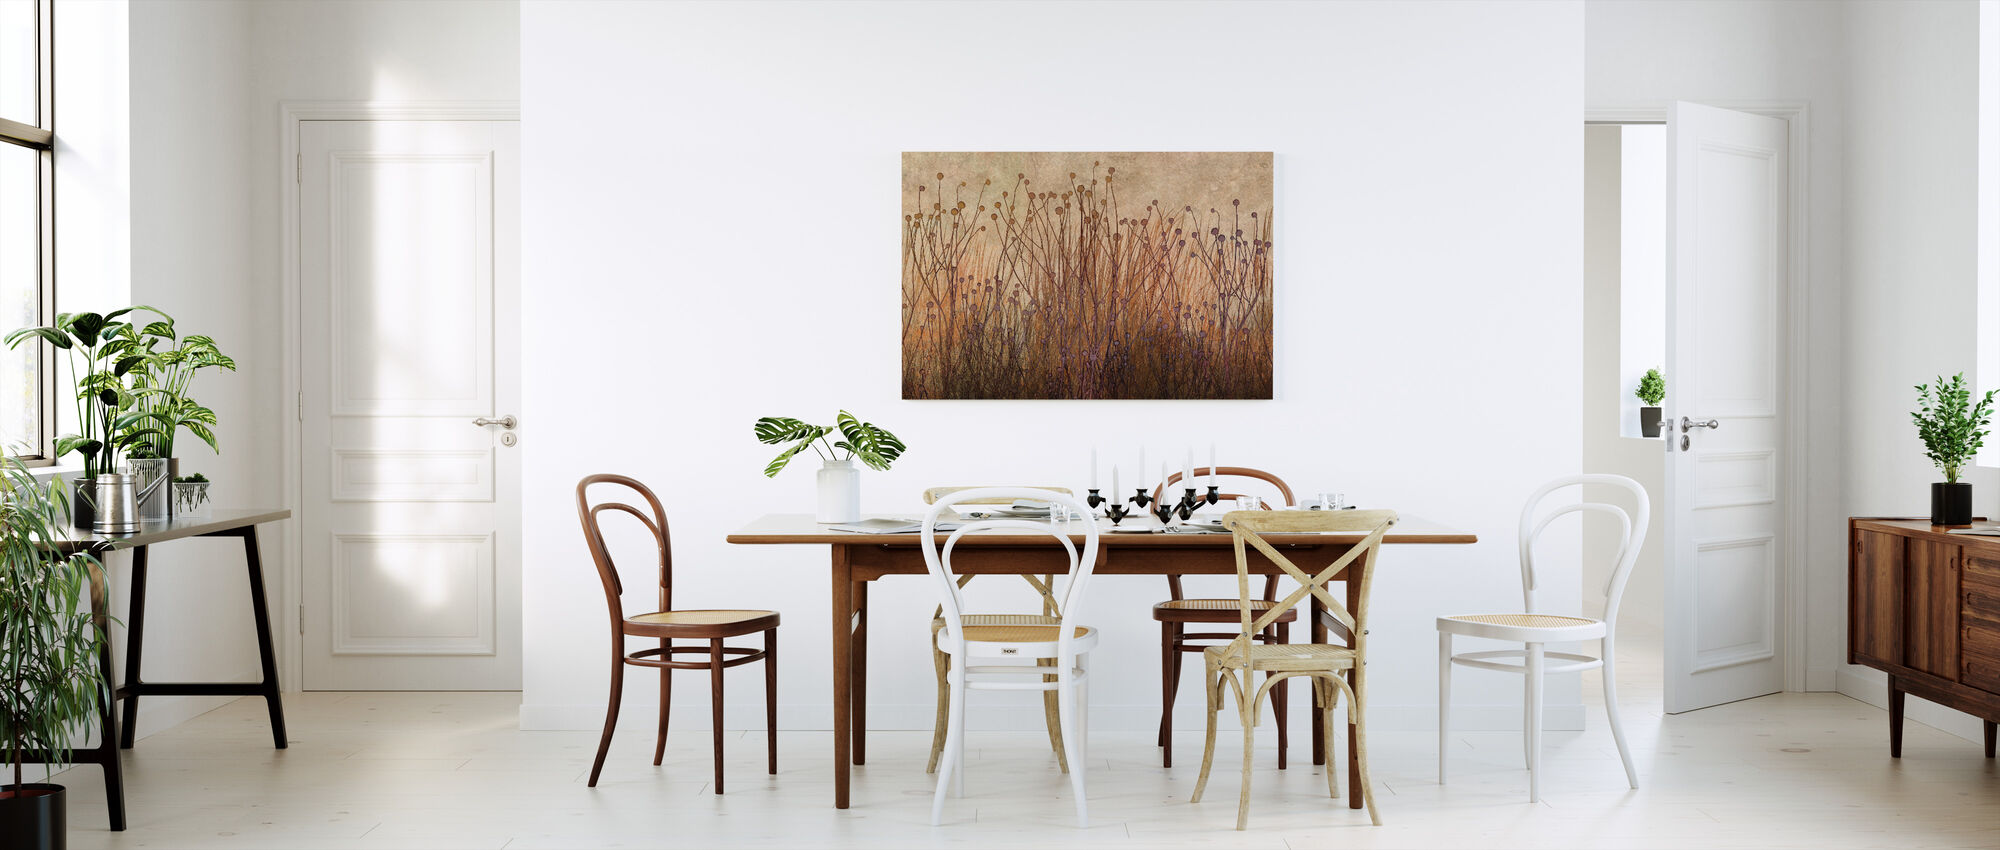 Copper Grass Silhouette - Canvas print - Kitchen